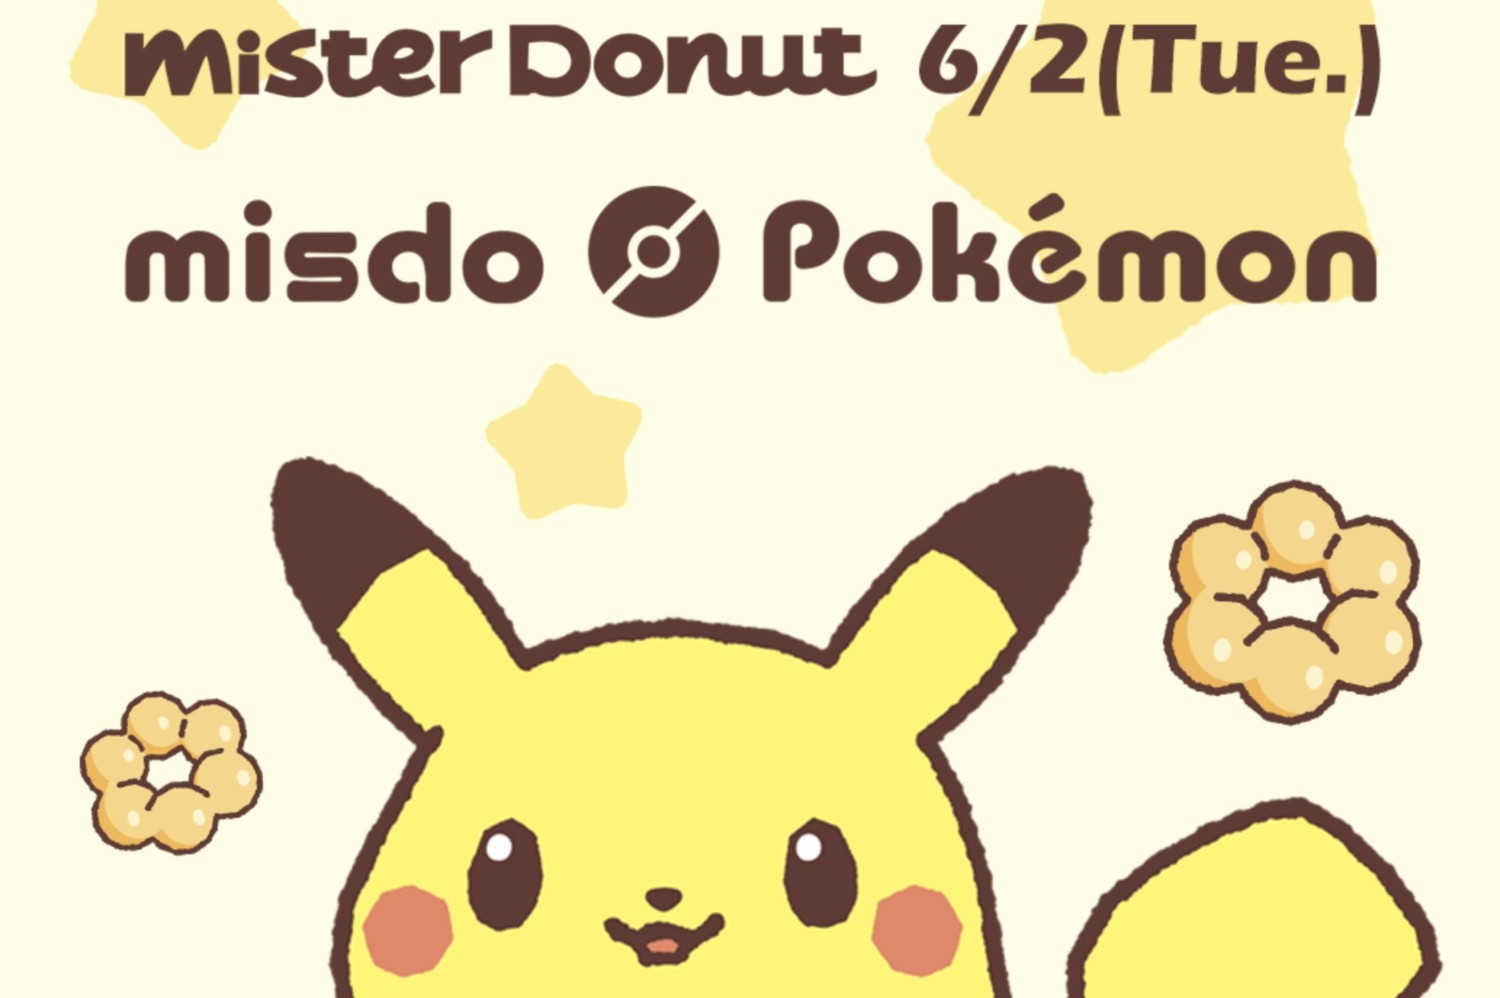 Pokemon X Mister Donut Campaign Coming To Taiwan | NintendoSoup